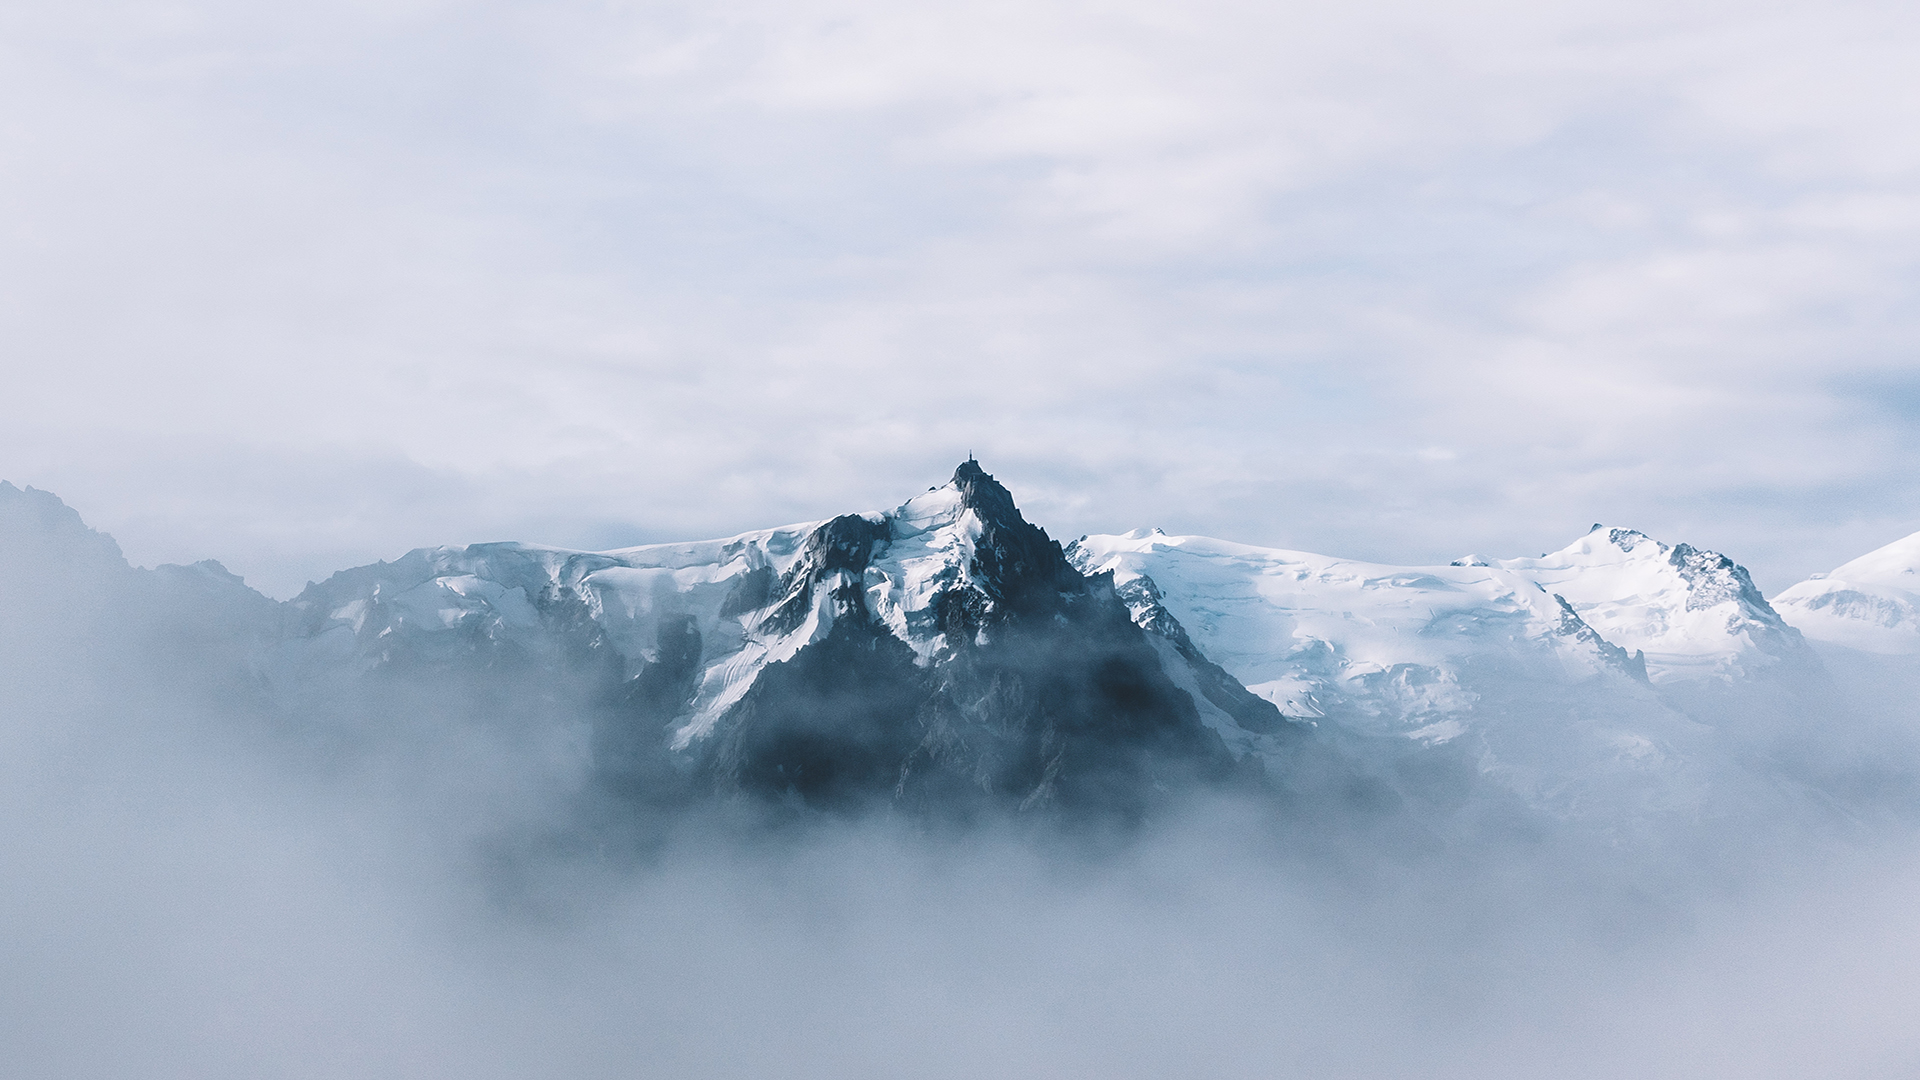 Licensing Contributor Jelle Canipel talks landscape photography and exhibiting his work alongside Michiel Pieters and Joris Put